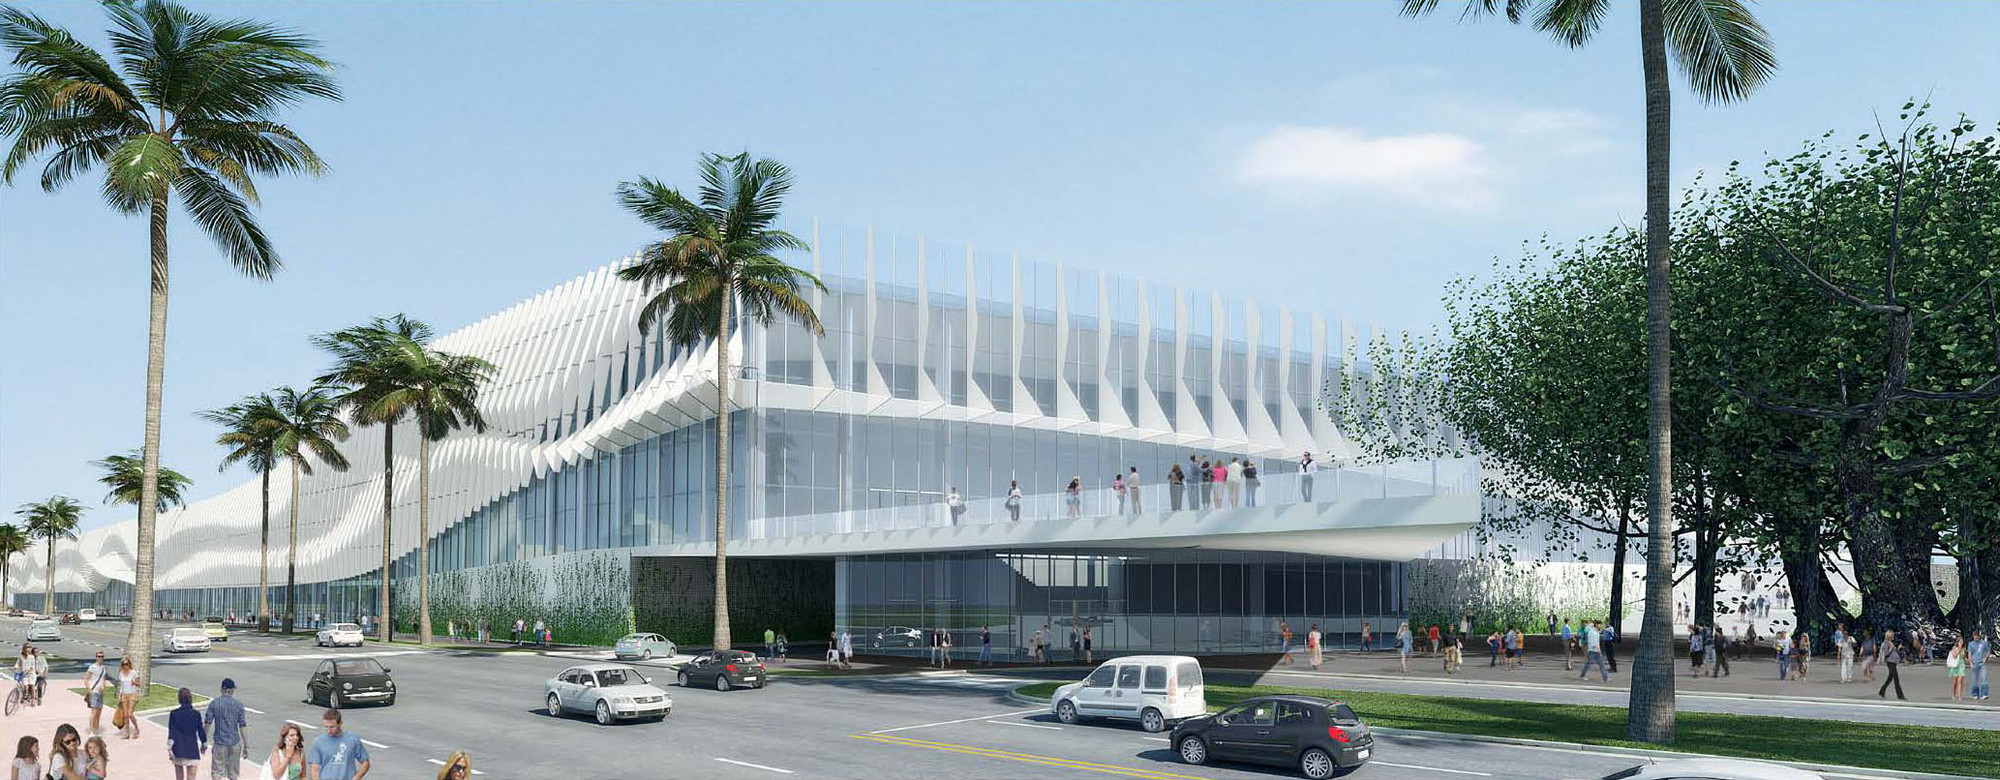 fentress releases final design for miami beach convention